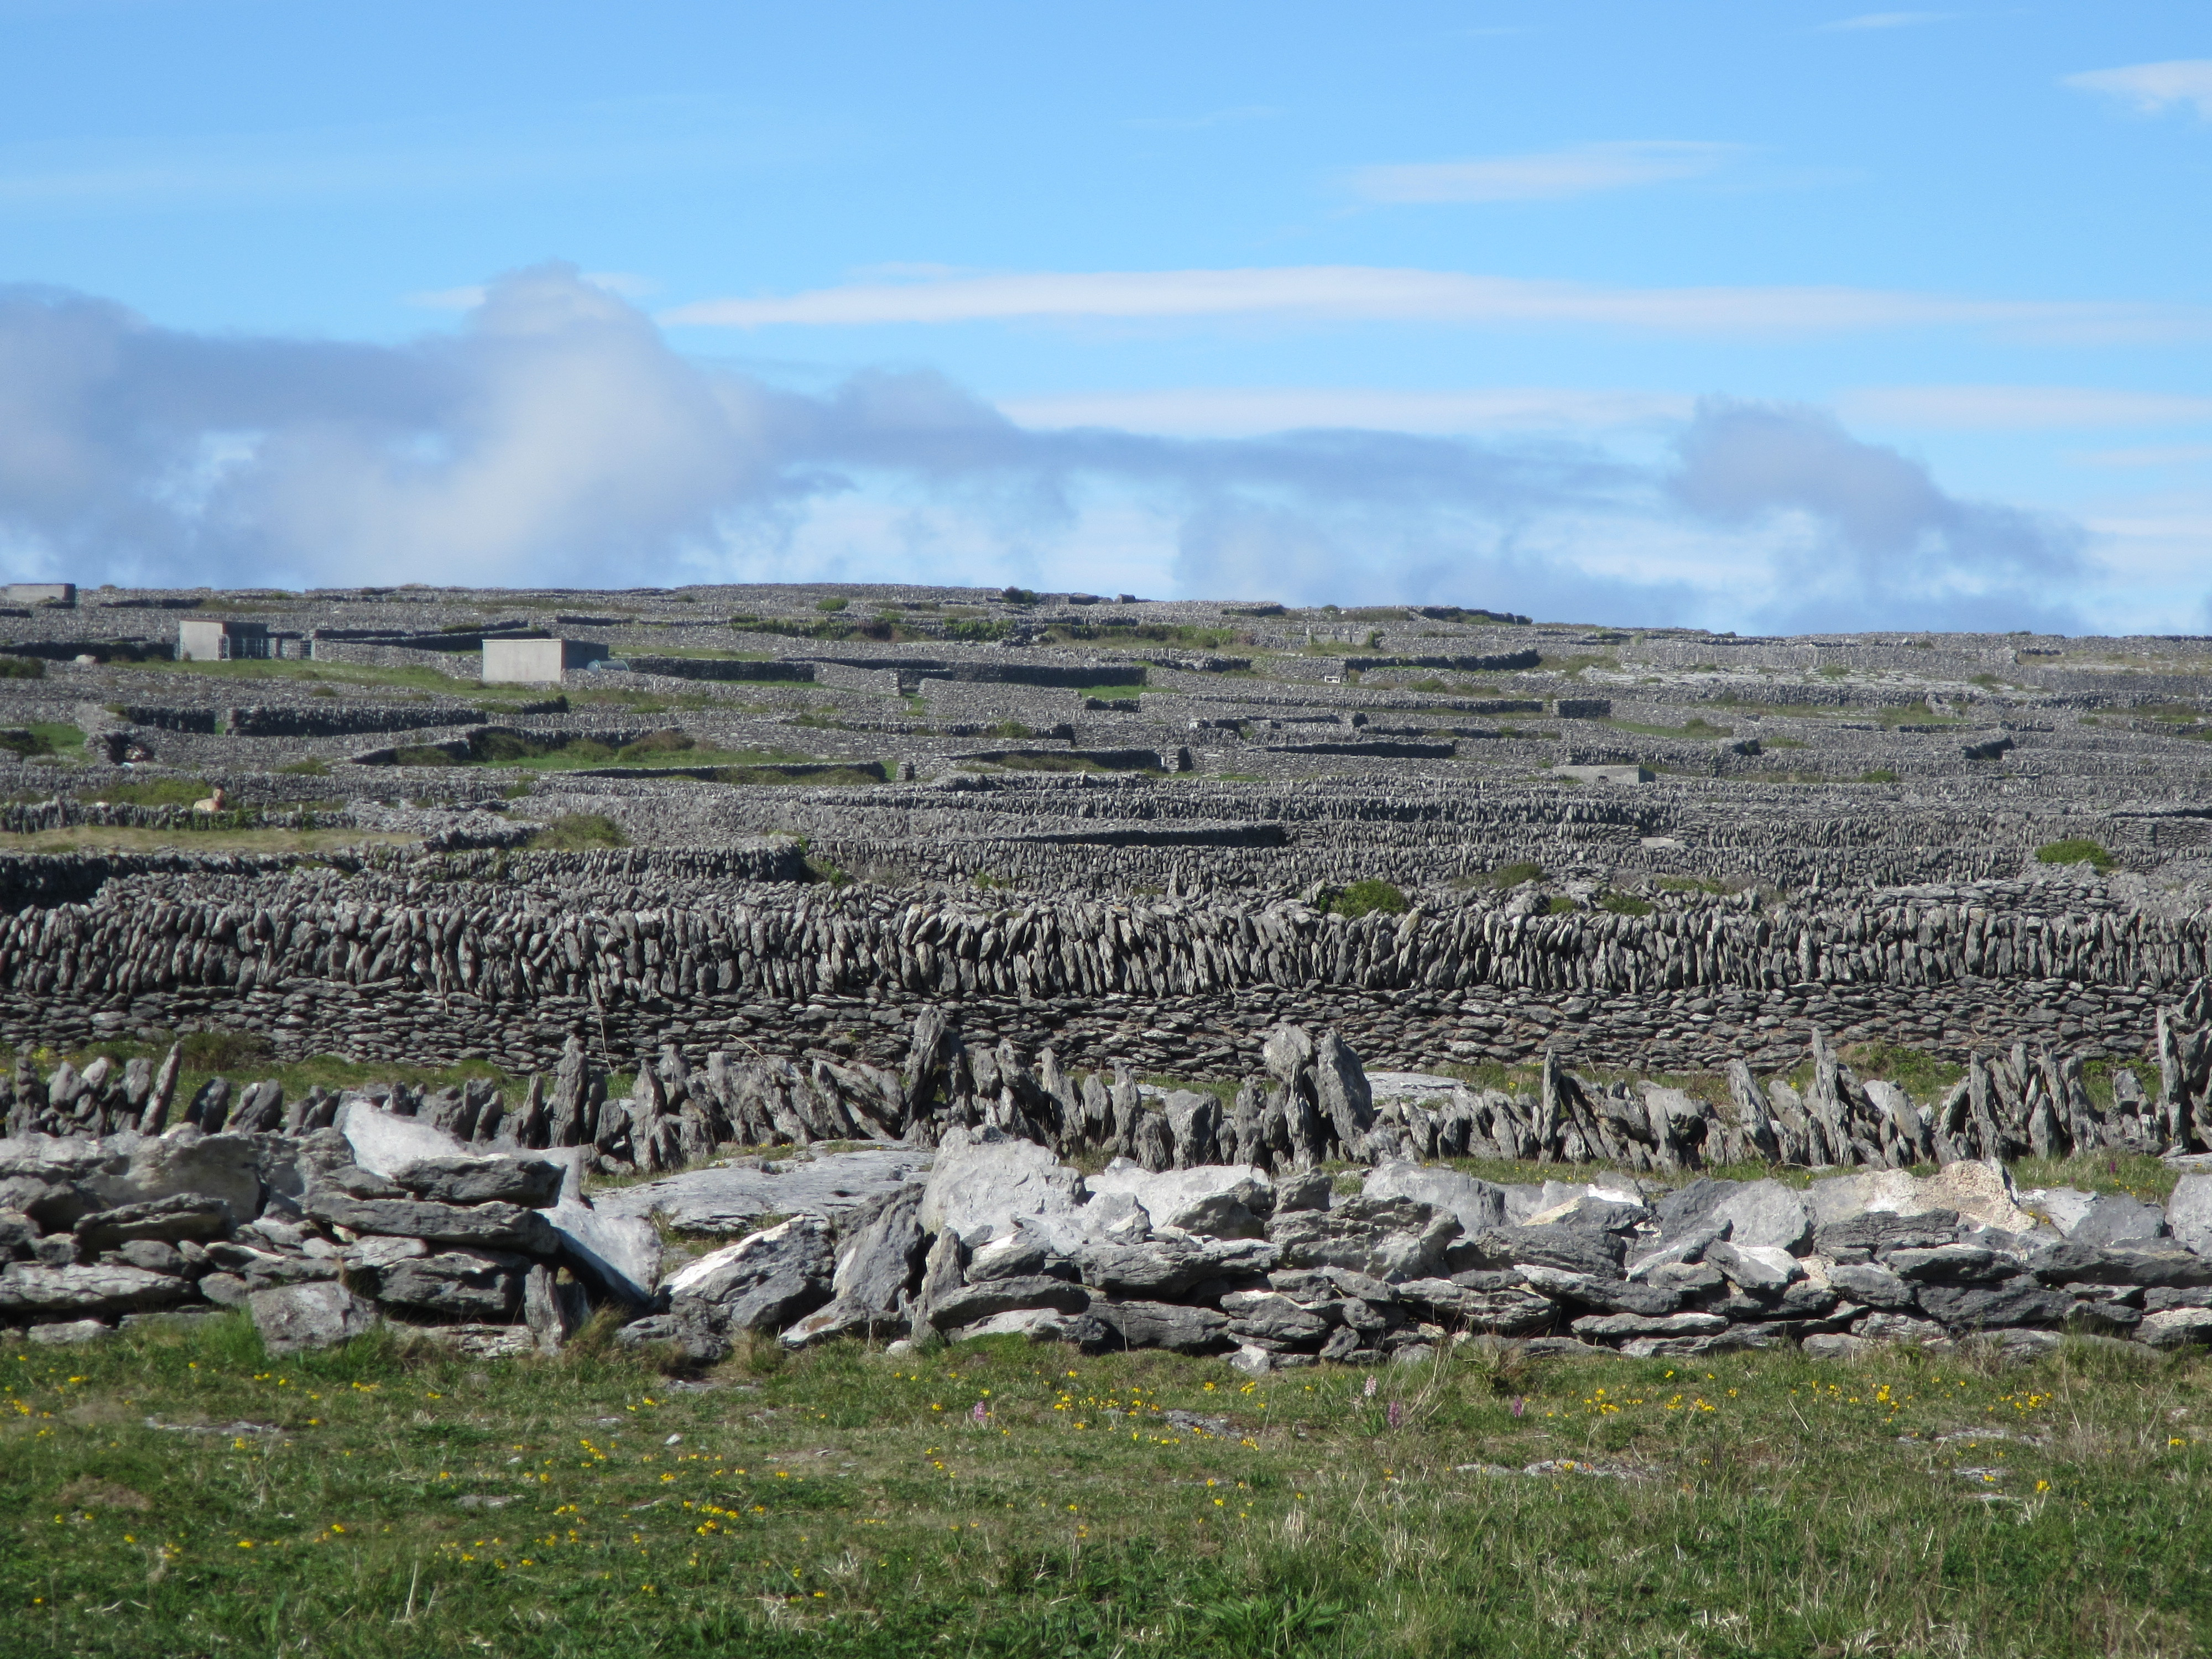 Farms on islands are made up of a number of small fields surrounded by stone walls which give shelter to livestock and protect the soil.